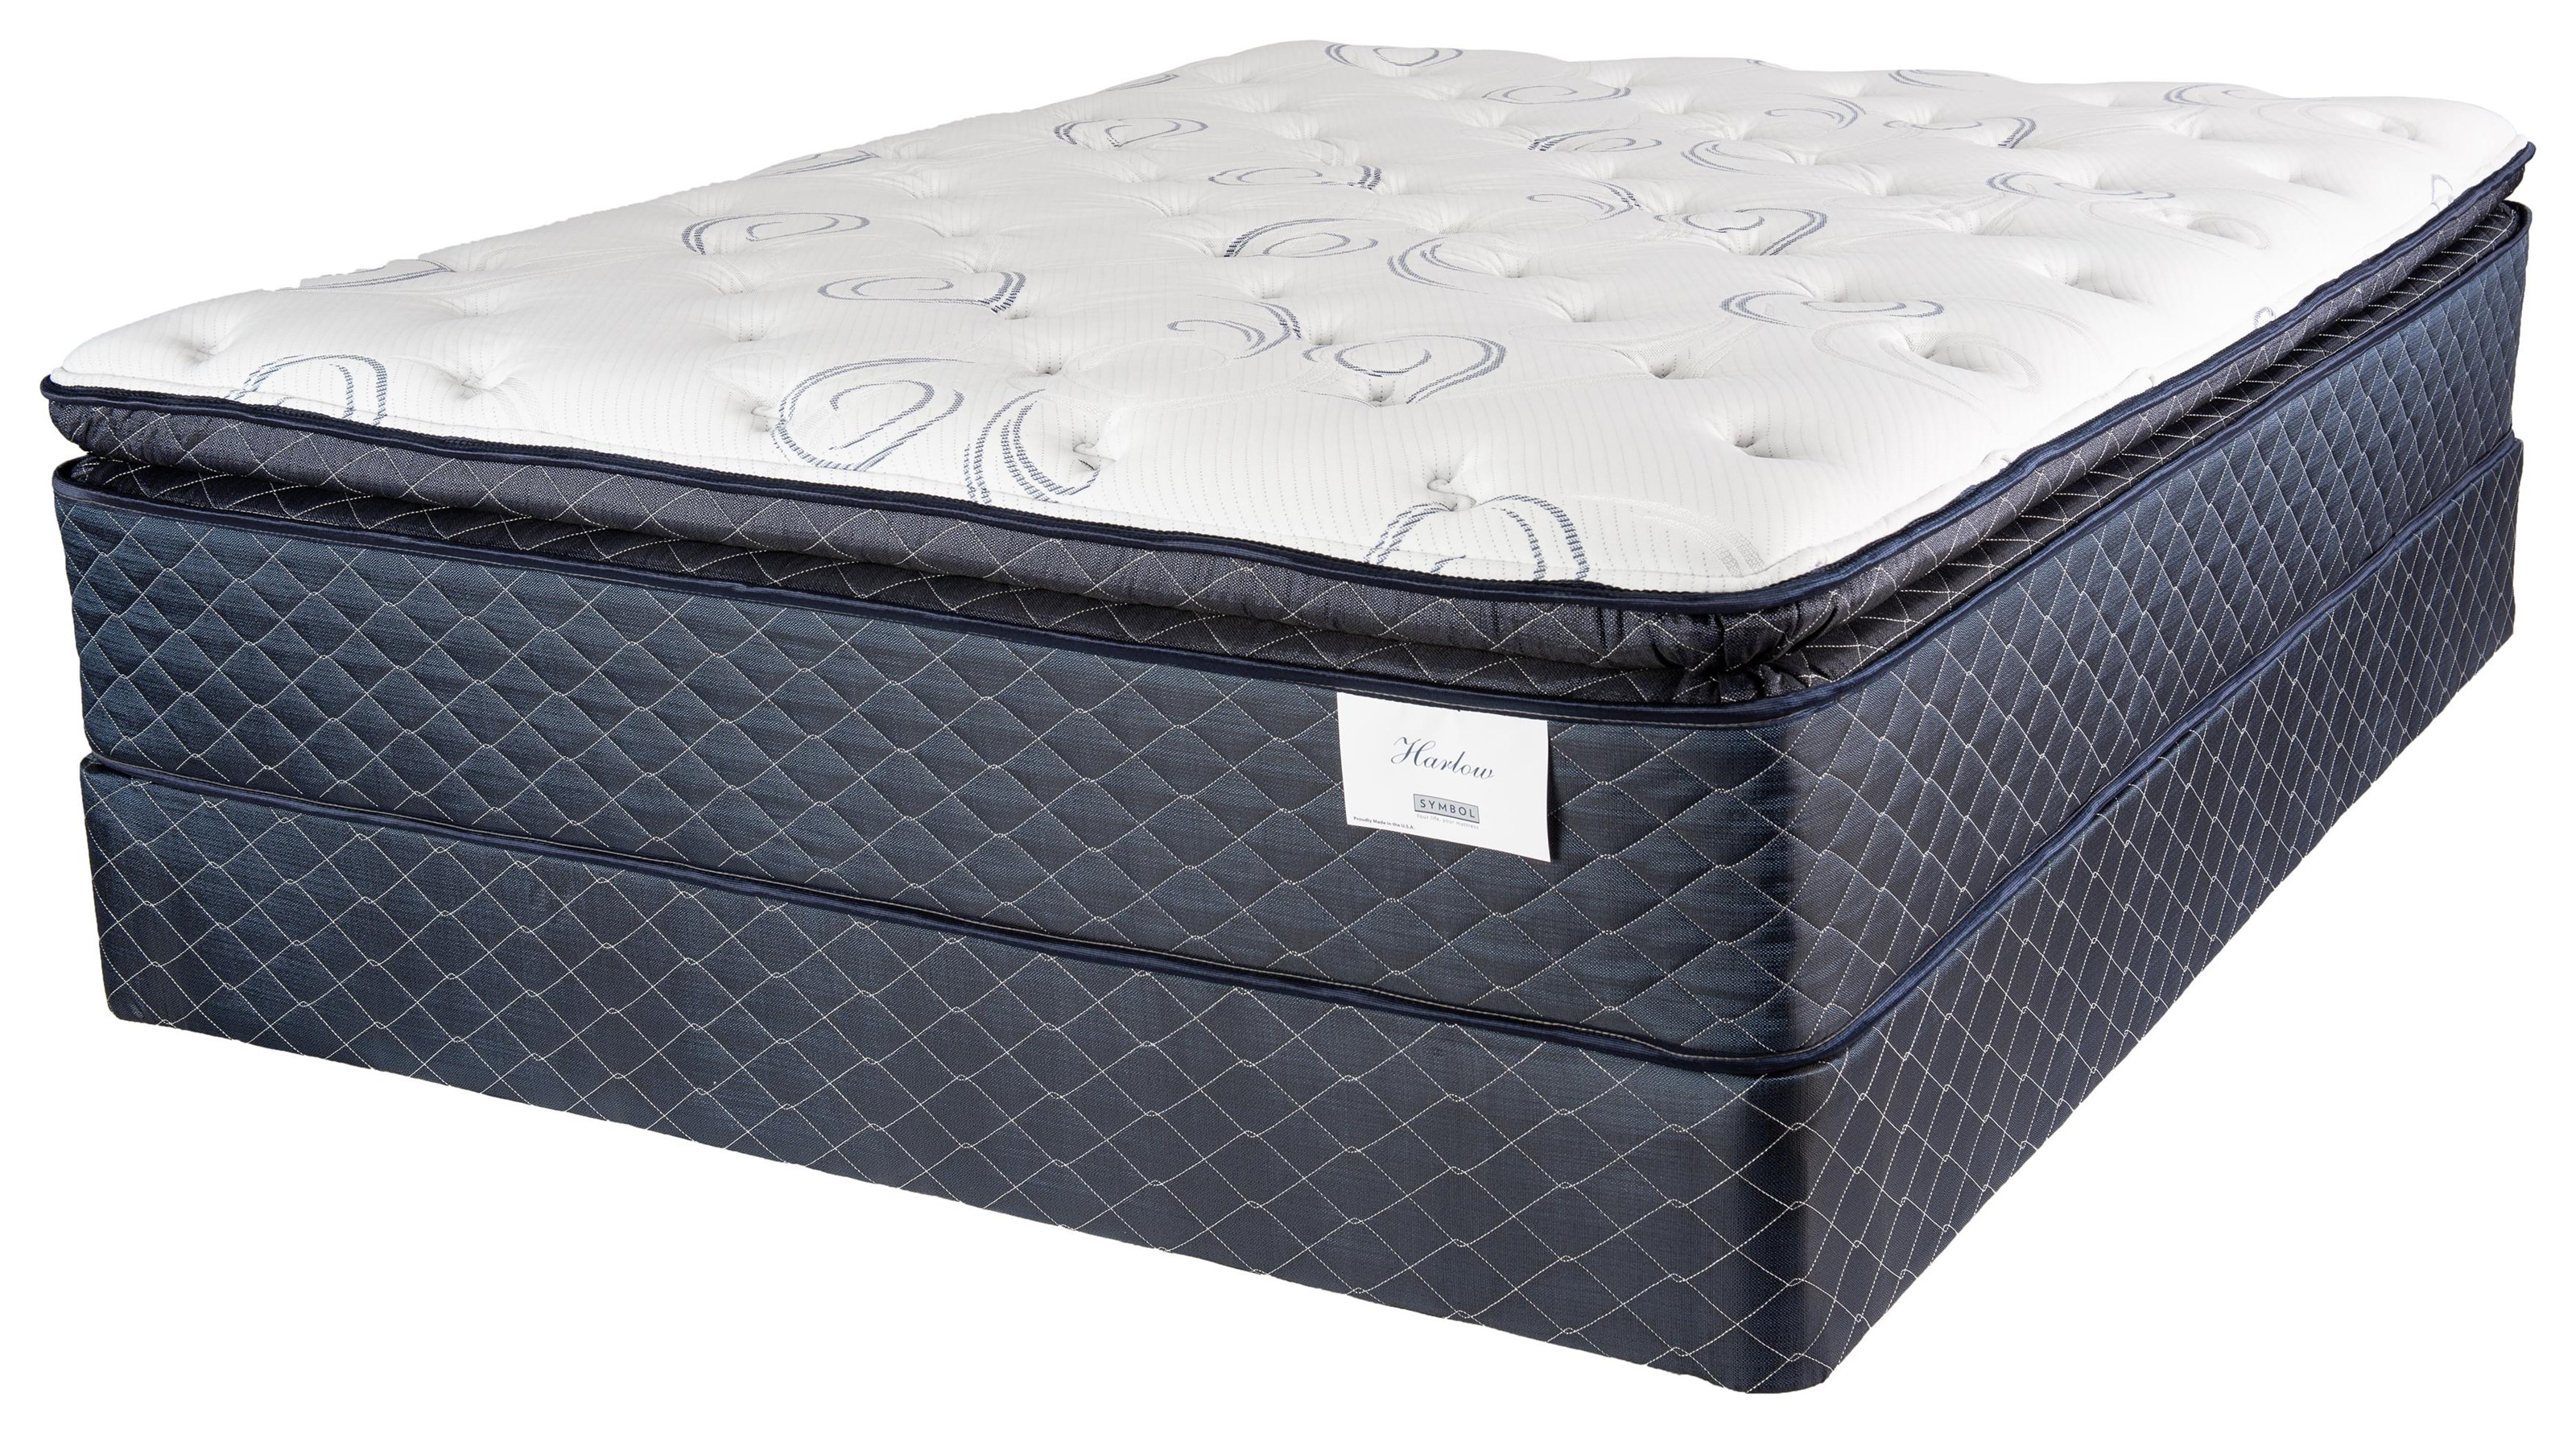 KING ANNIVERSARY PILLOW TOP MATTRESS